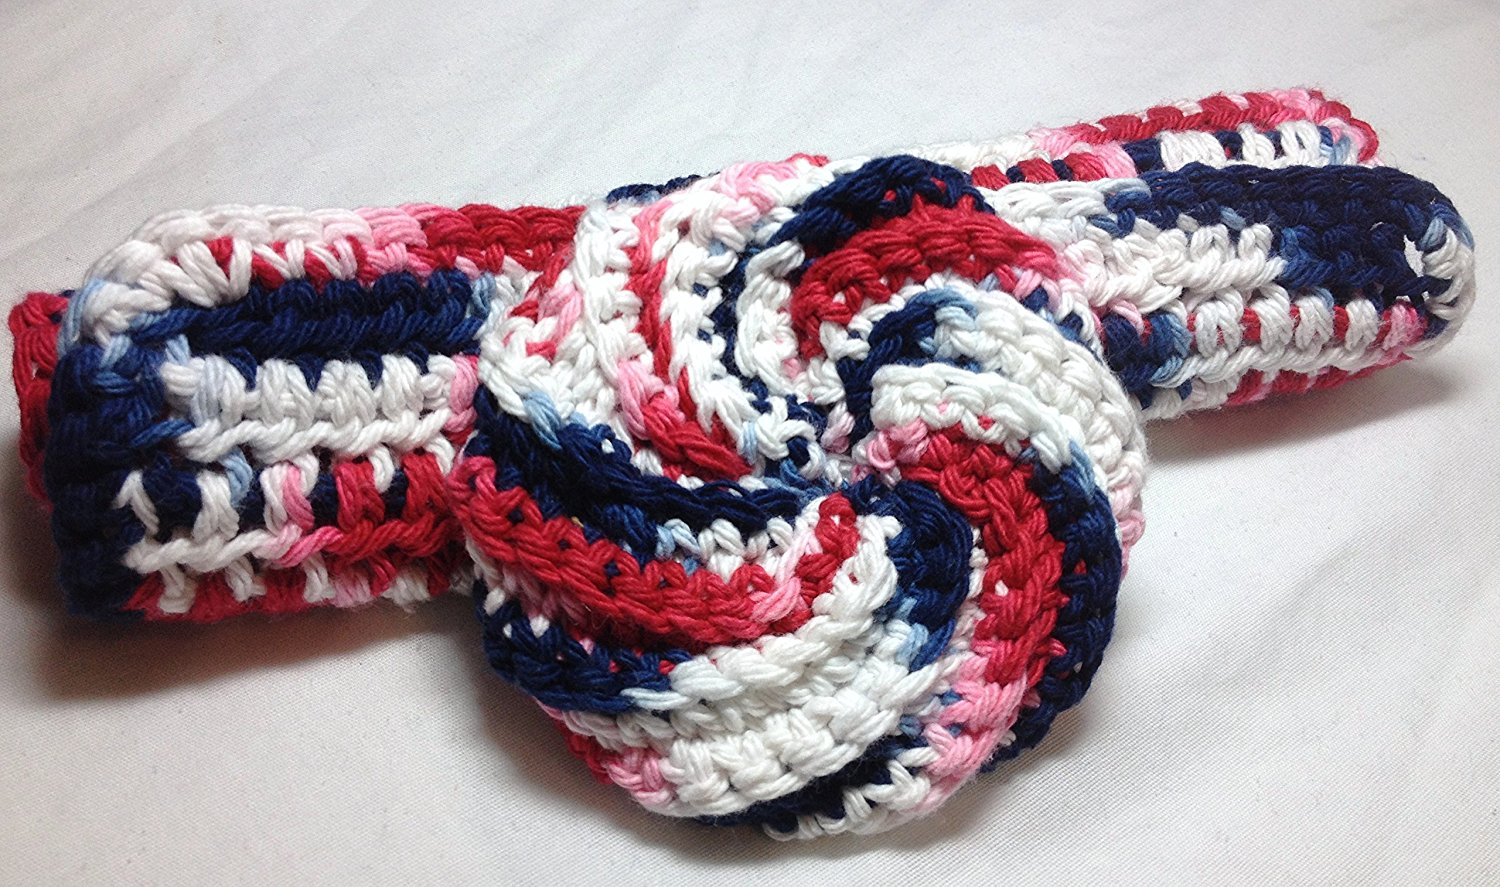 Red, white, and blue handmade, 100% cotton crocheted round scrubber and wash cloth/dish cloth- 2 piece set